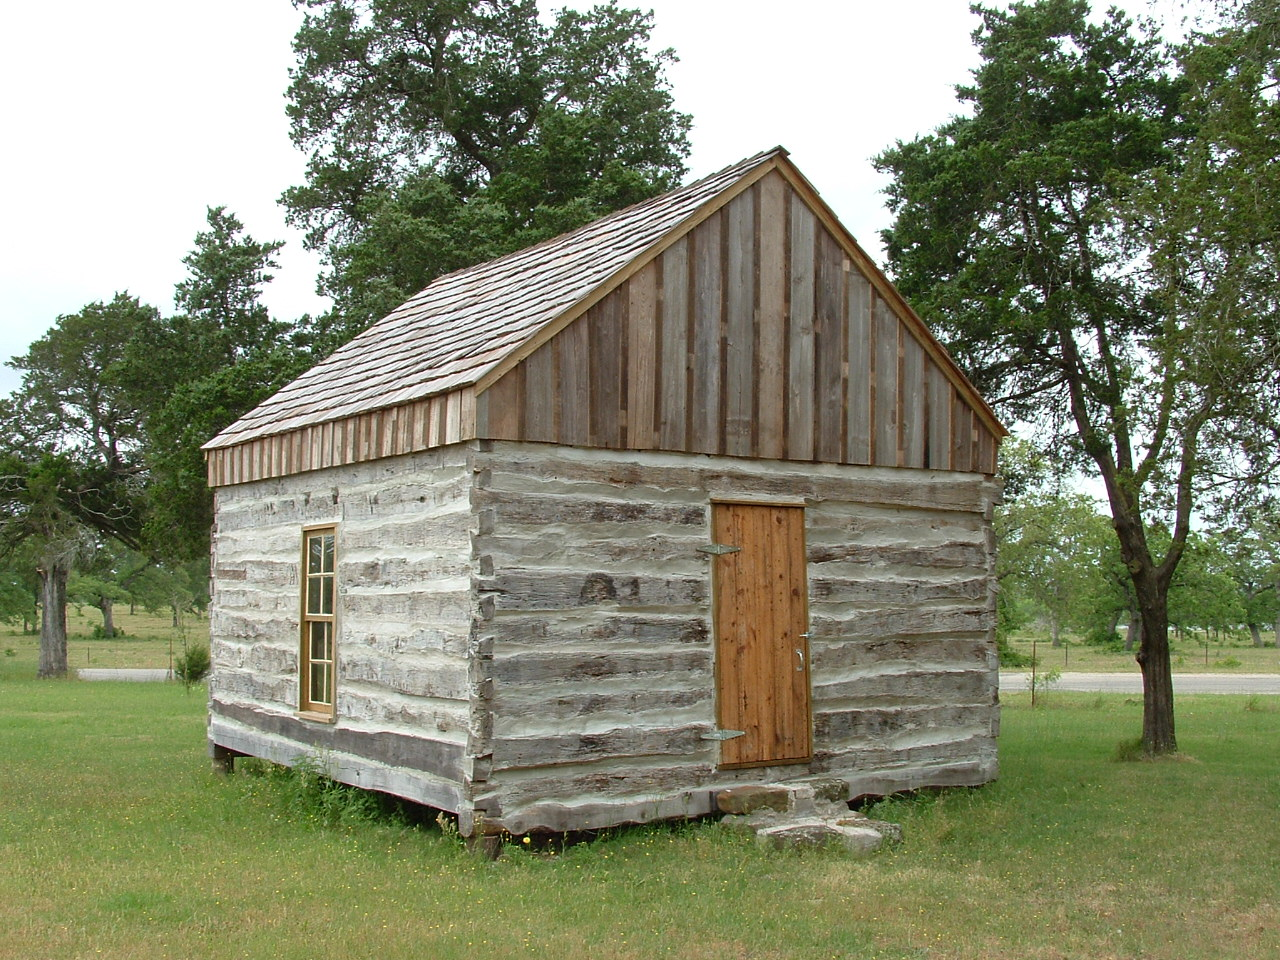 file wendish pioneer log cabin in serbin texas jpg wikimedia commons. Black Bedroom Furniture Sets. Home Design Ideas